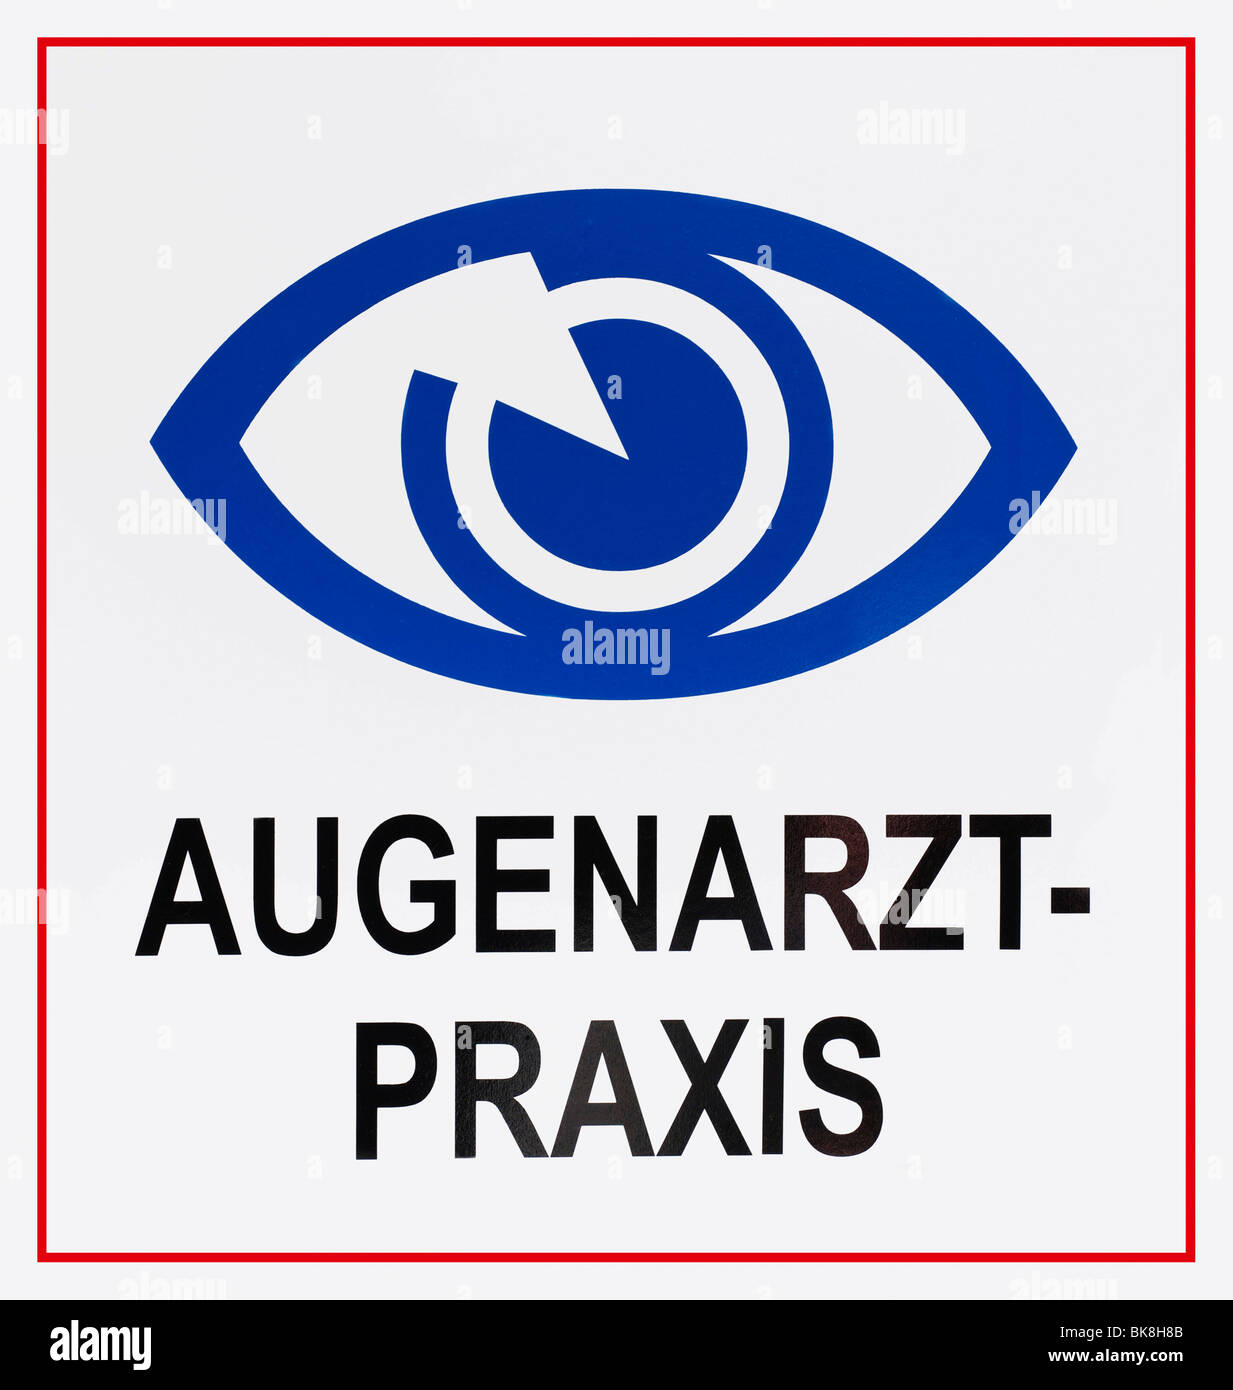 Sign: Augenarztpraxis, German for: eye specialist's surgery, with eye symbol - Stock Image